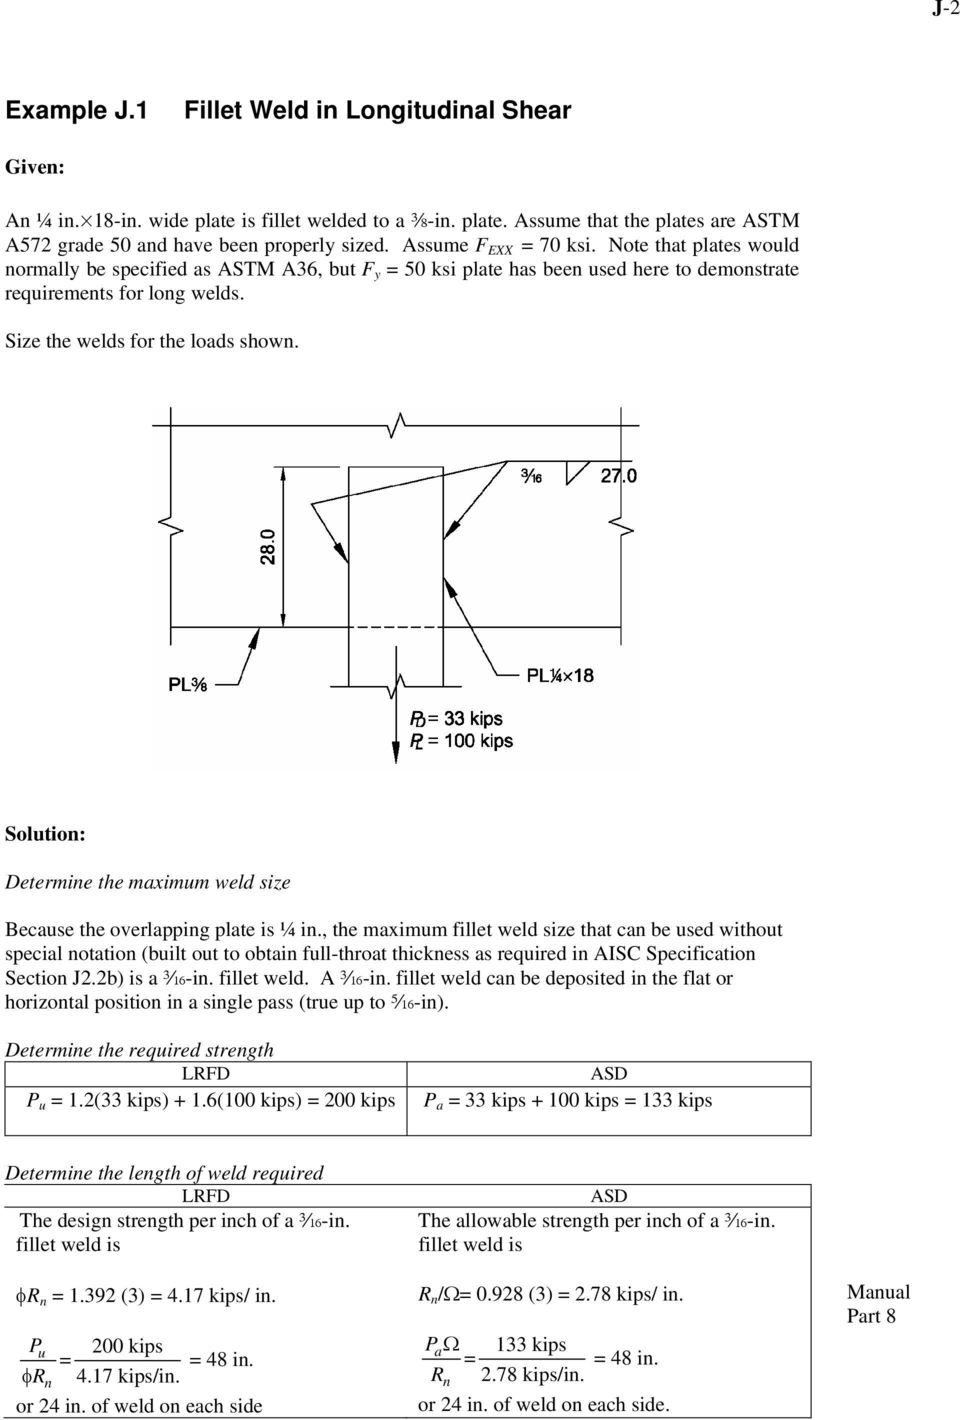 CHAPTER J DESIGN OF CONNECTIONS - PDF